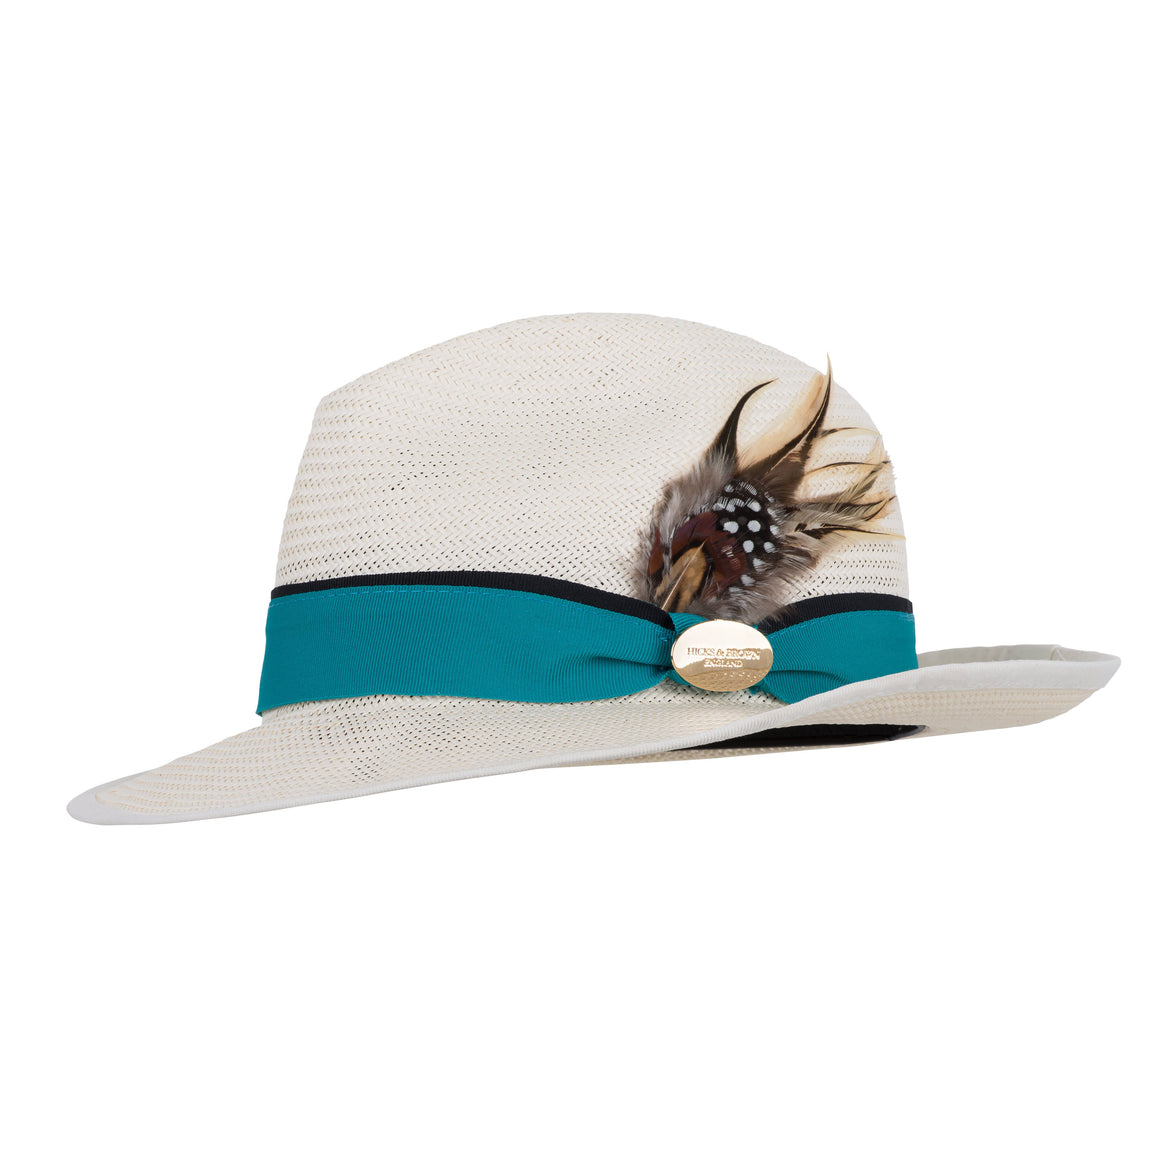 Hicks and Brown The Holkham LUXE Ladies Panama (Turquoise Ribbon)